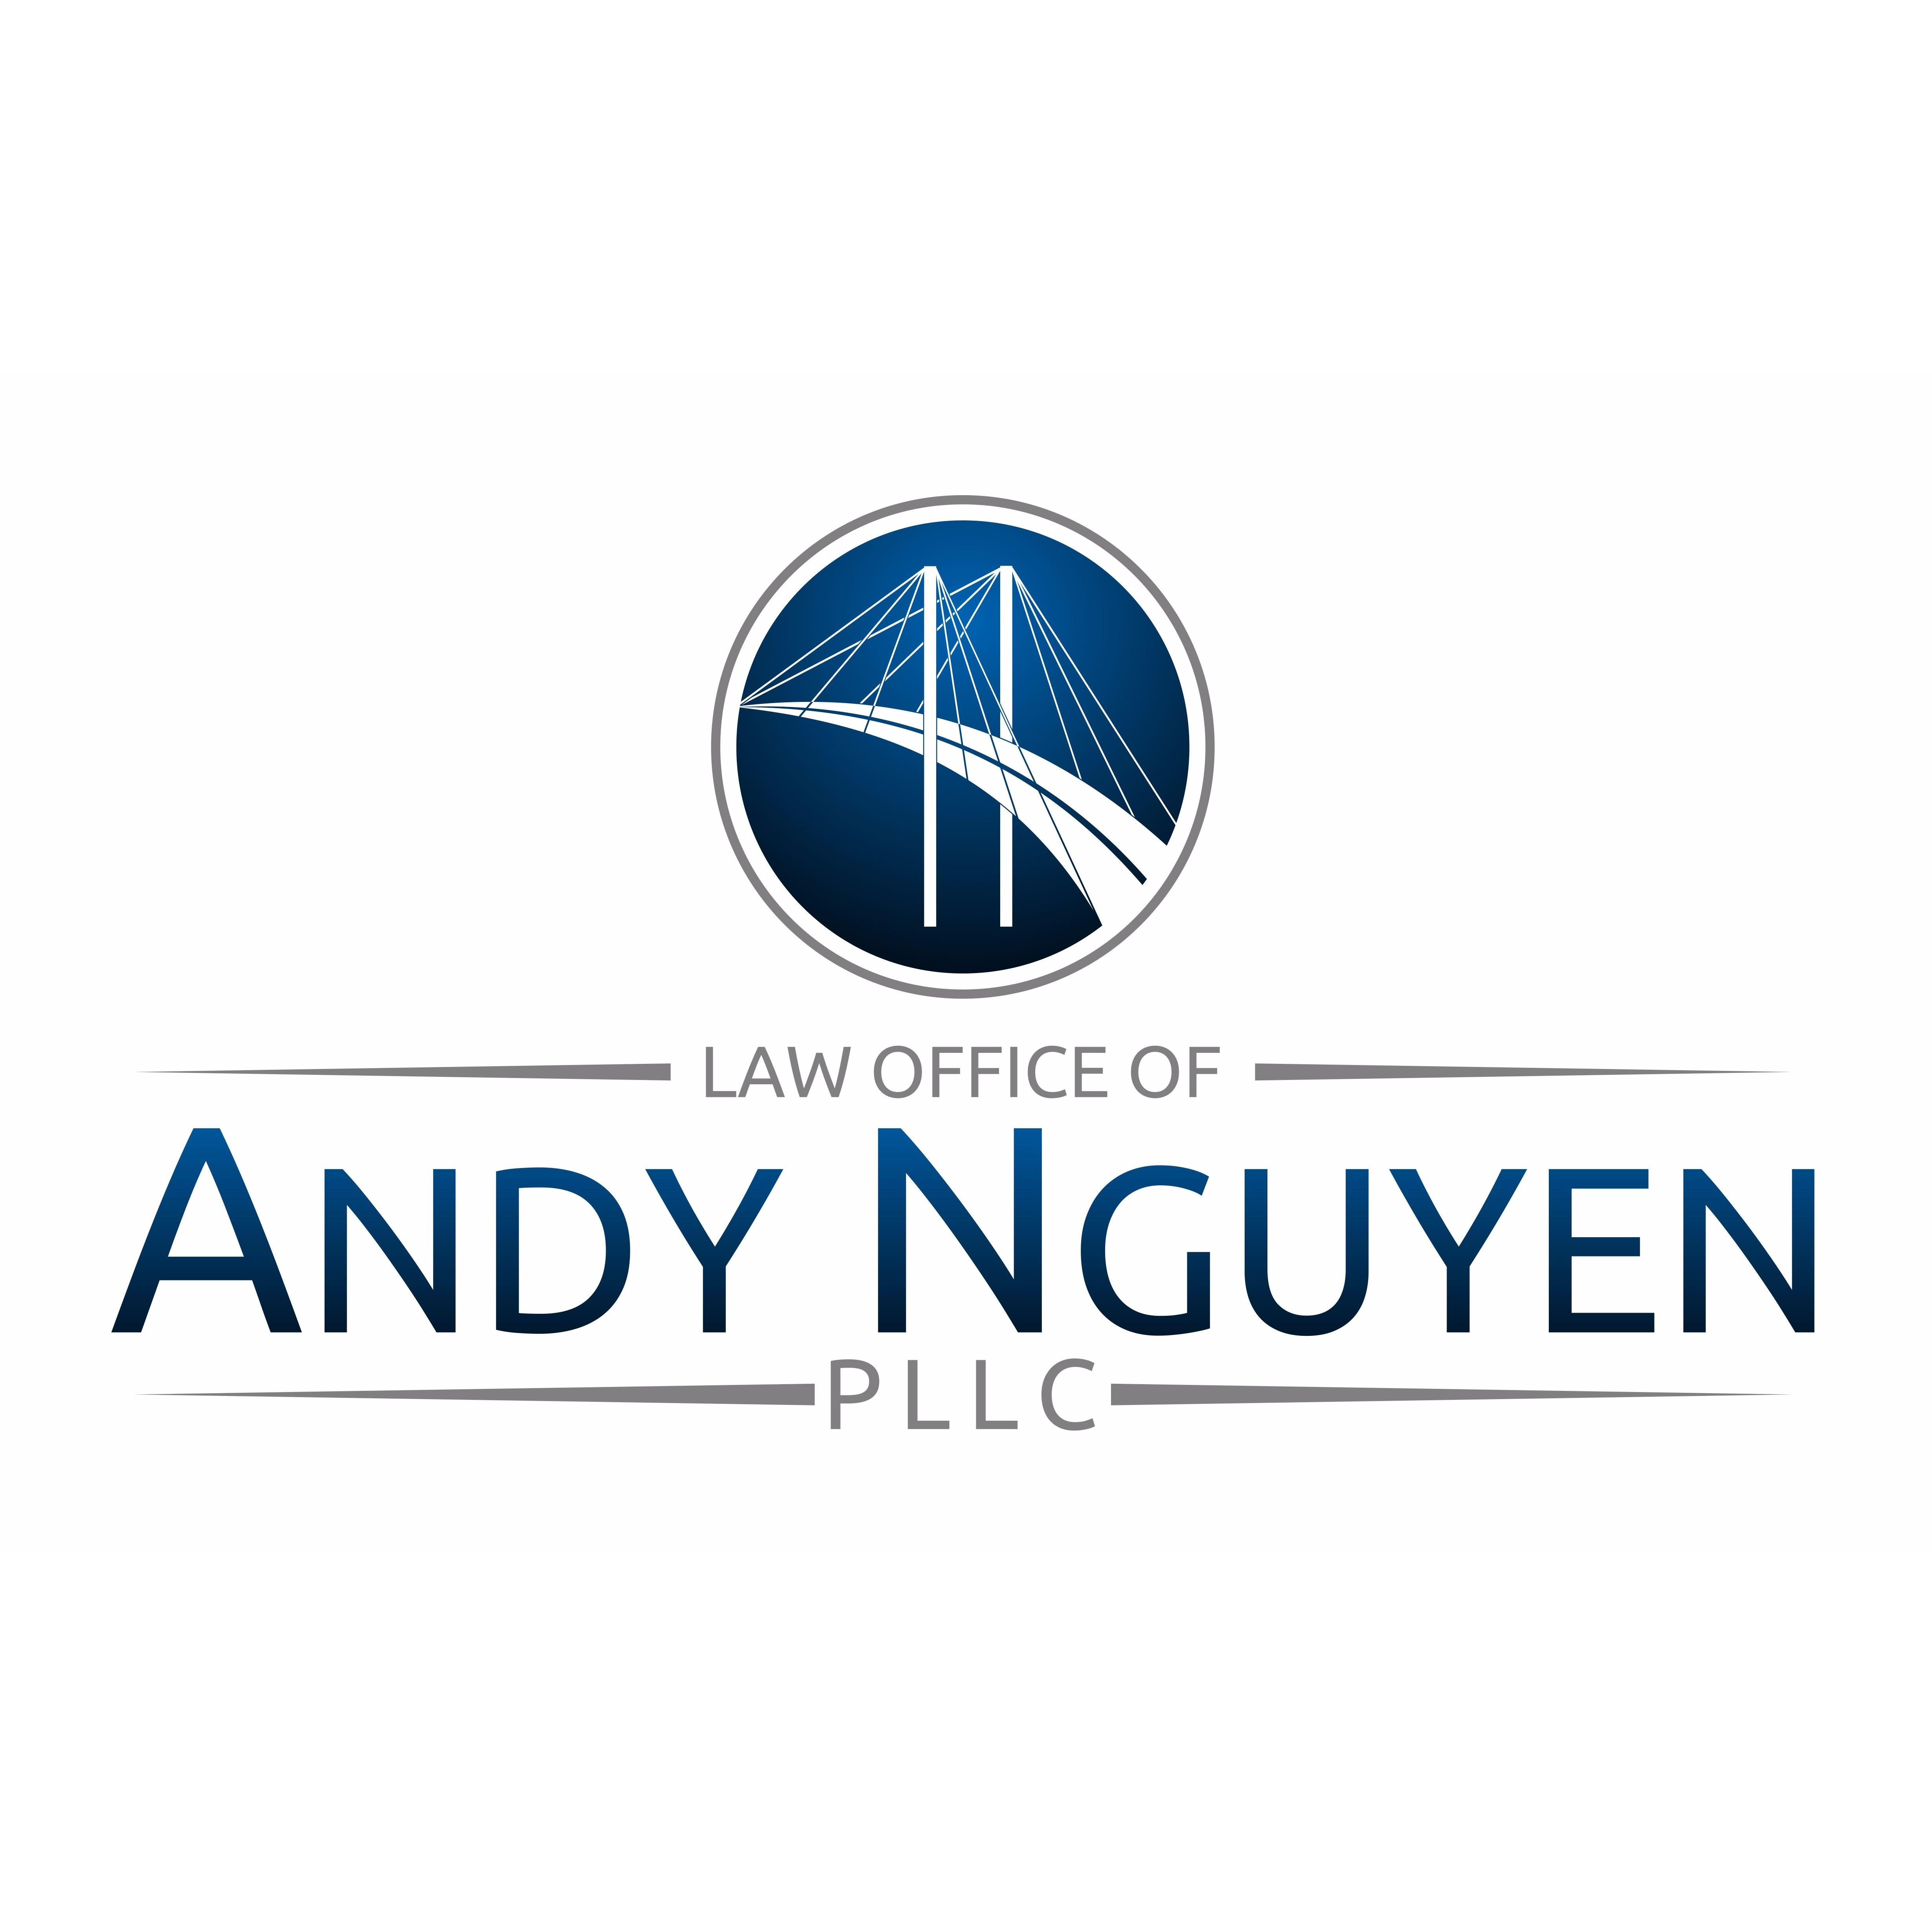 Law Office of Andy Nguyen, PLLC